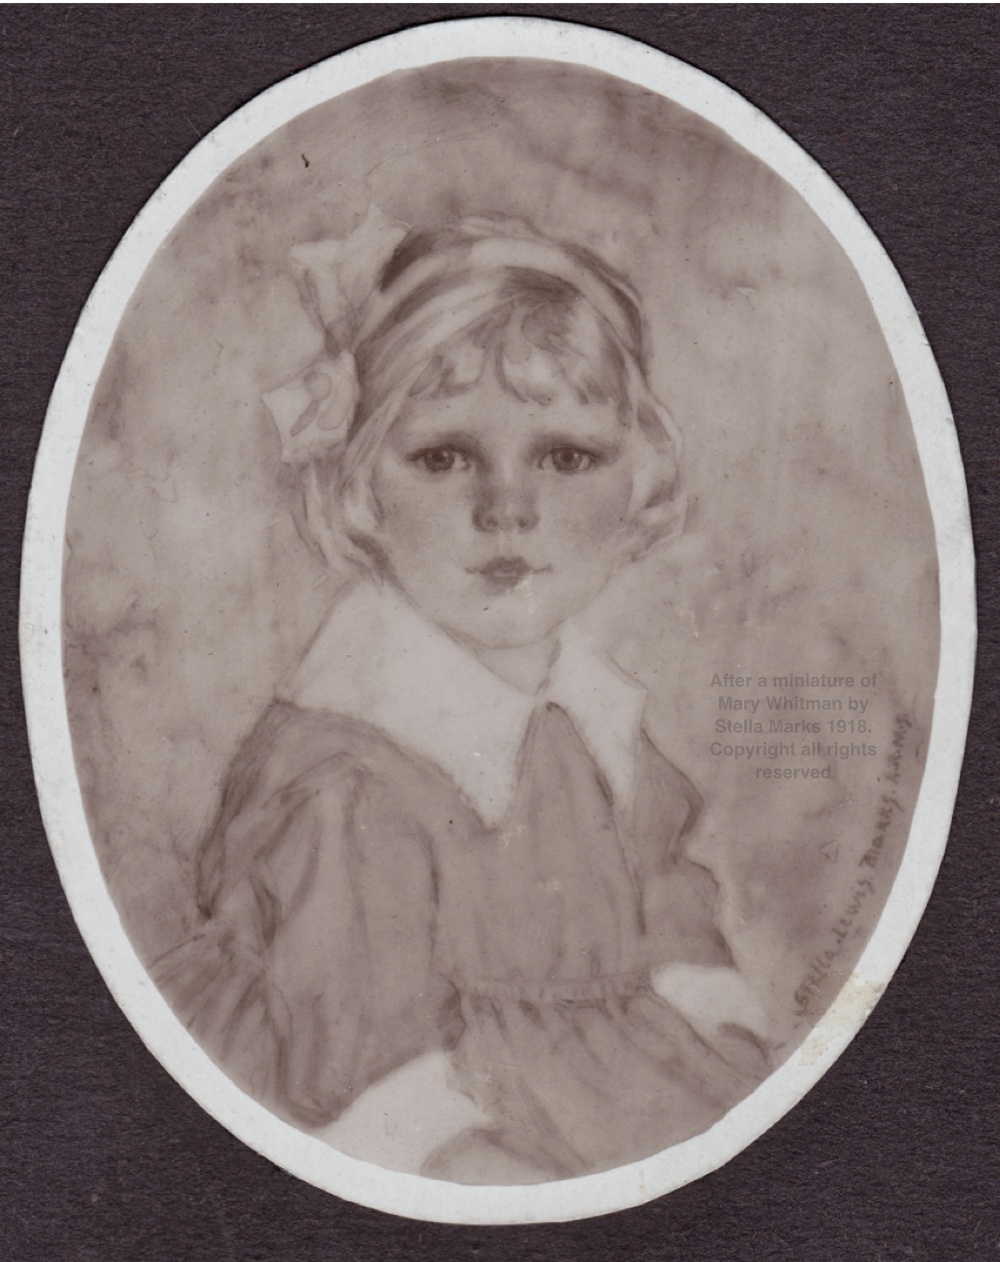 After a miniature of Mary Whitman by Stella Marks 1918. Copyright all rights reserved